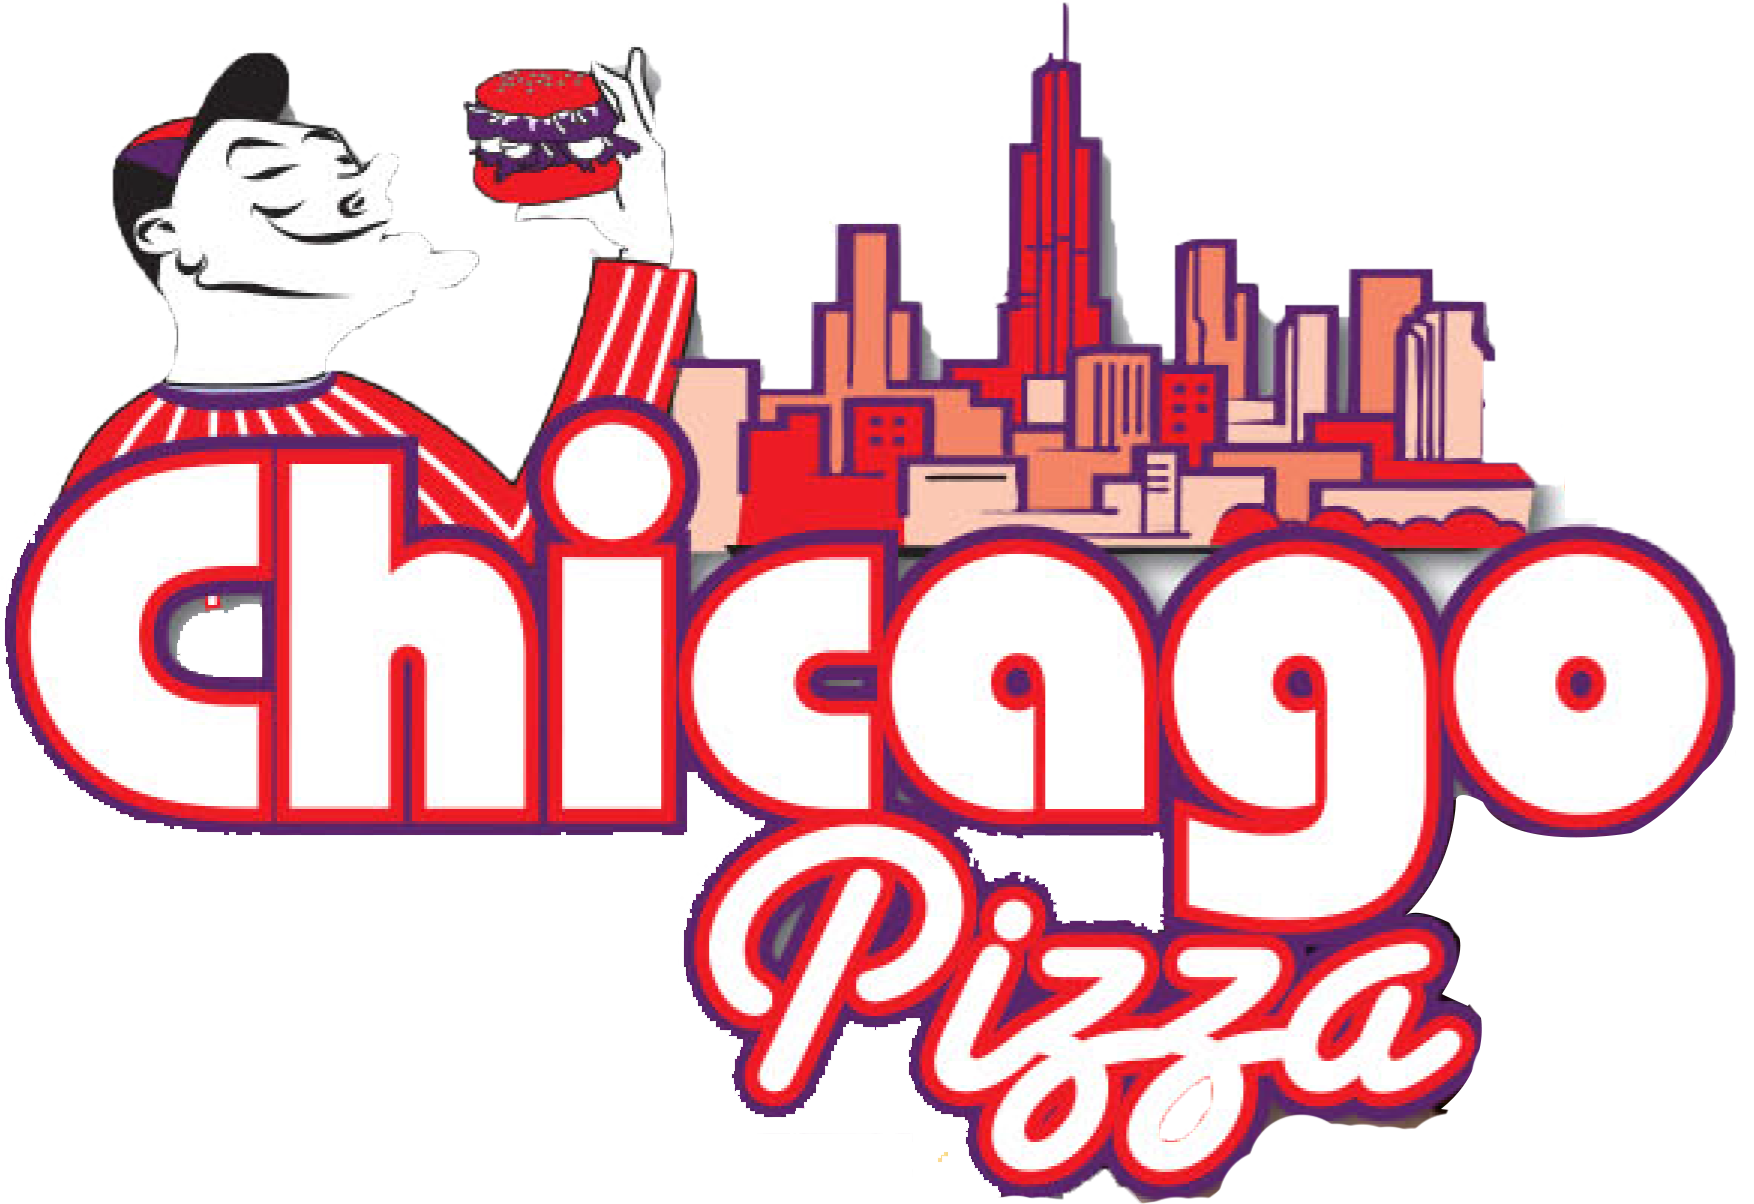 Chicago Pizza Chicago Pizza Leeds Takeaway Order Online